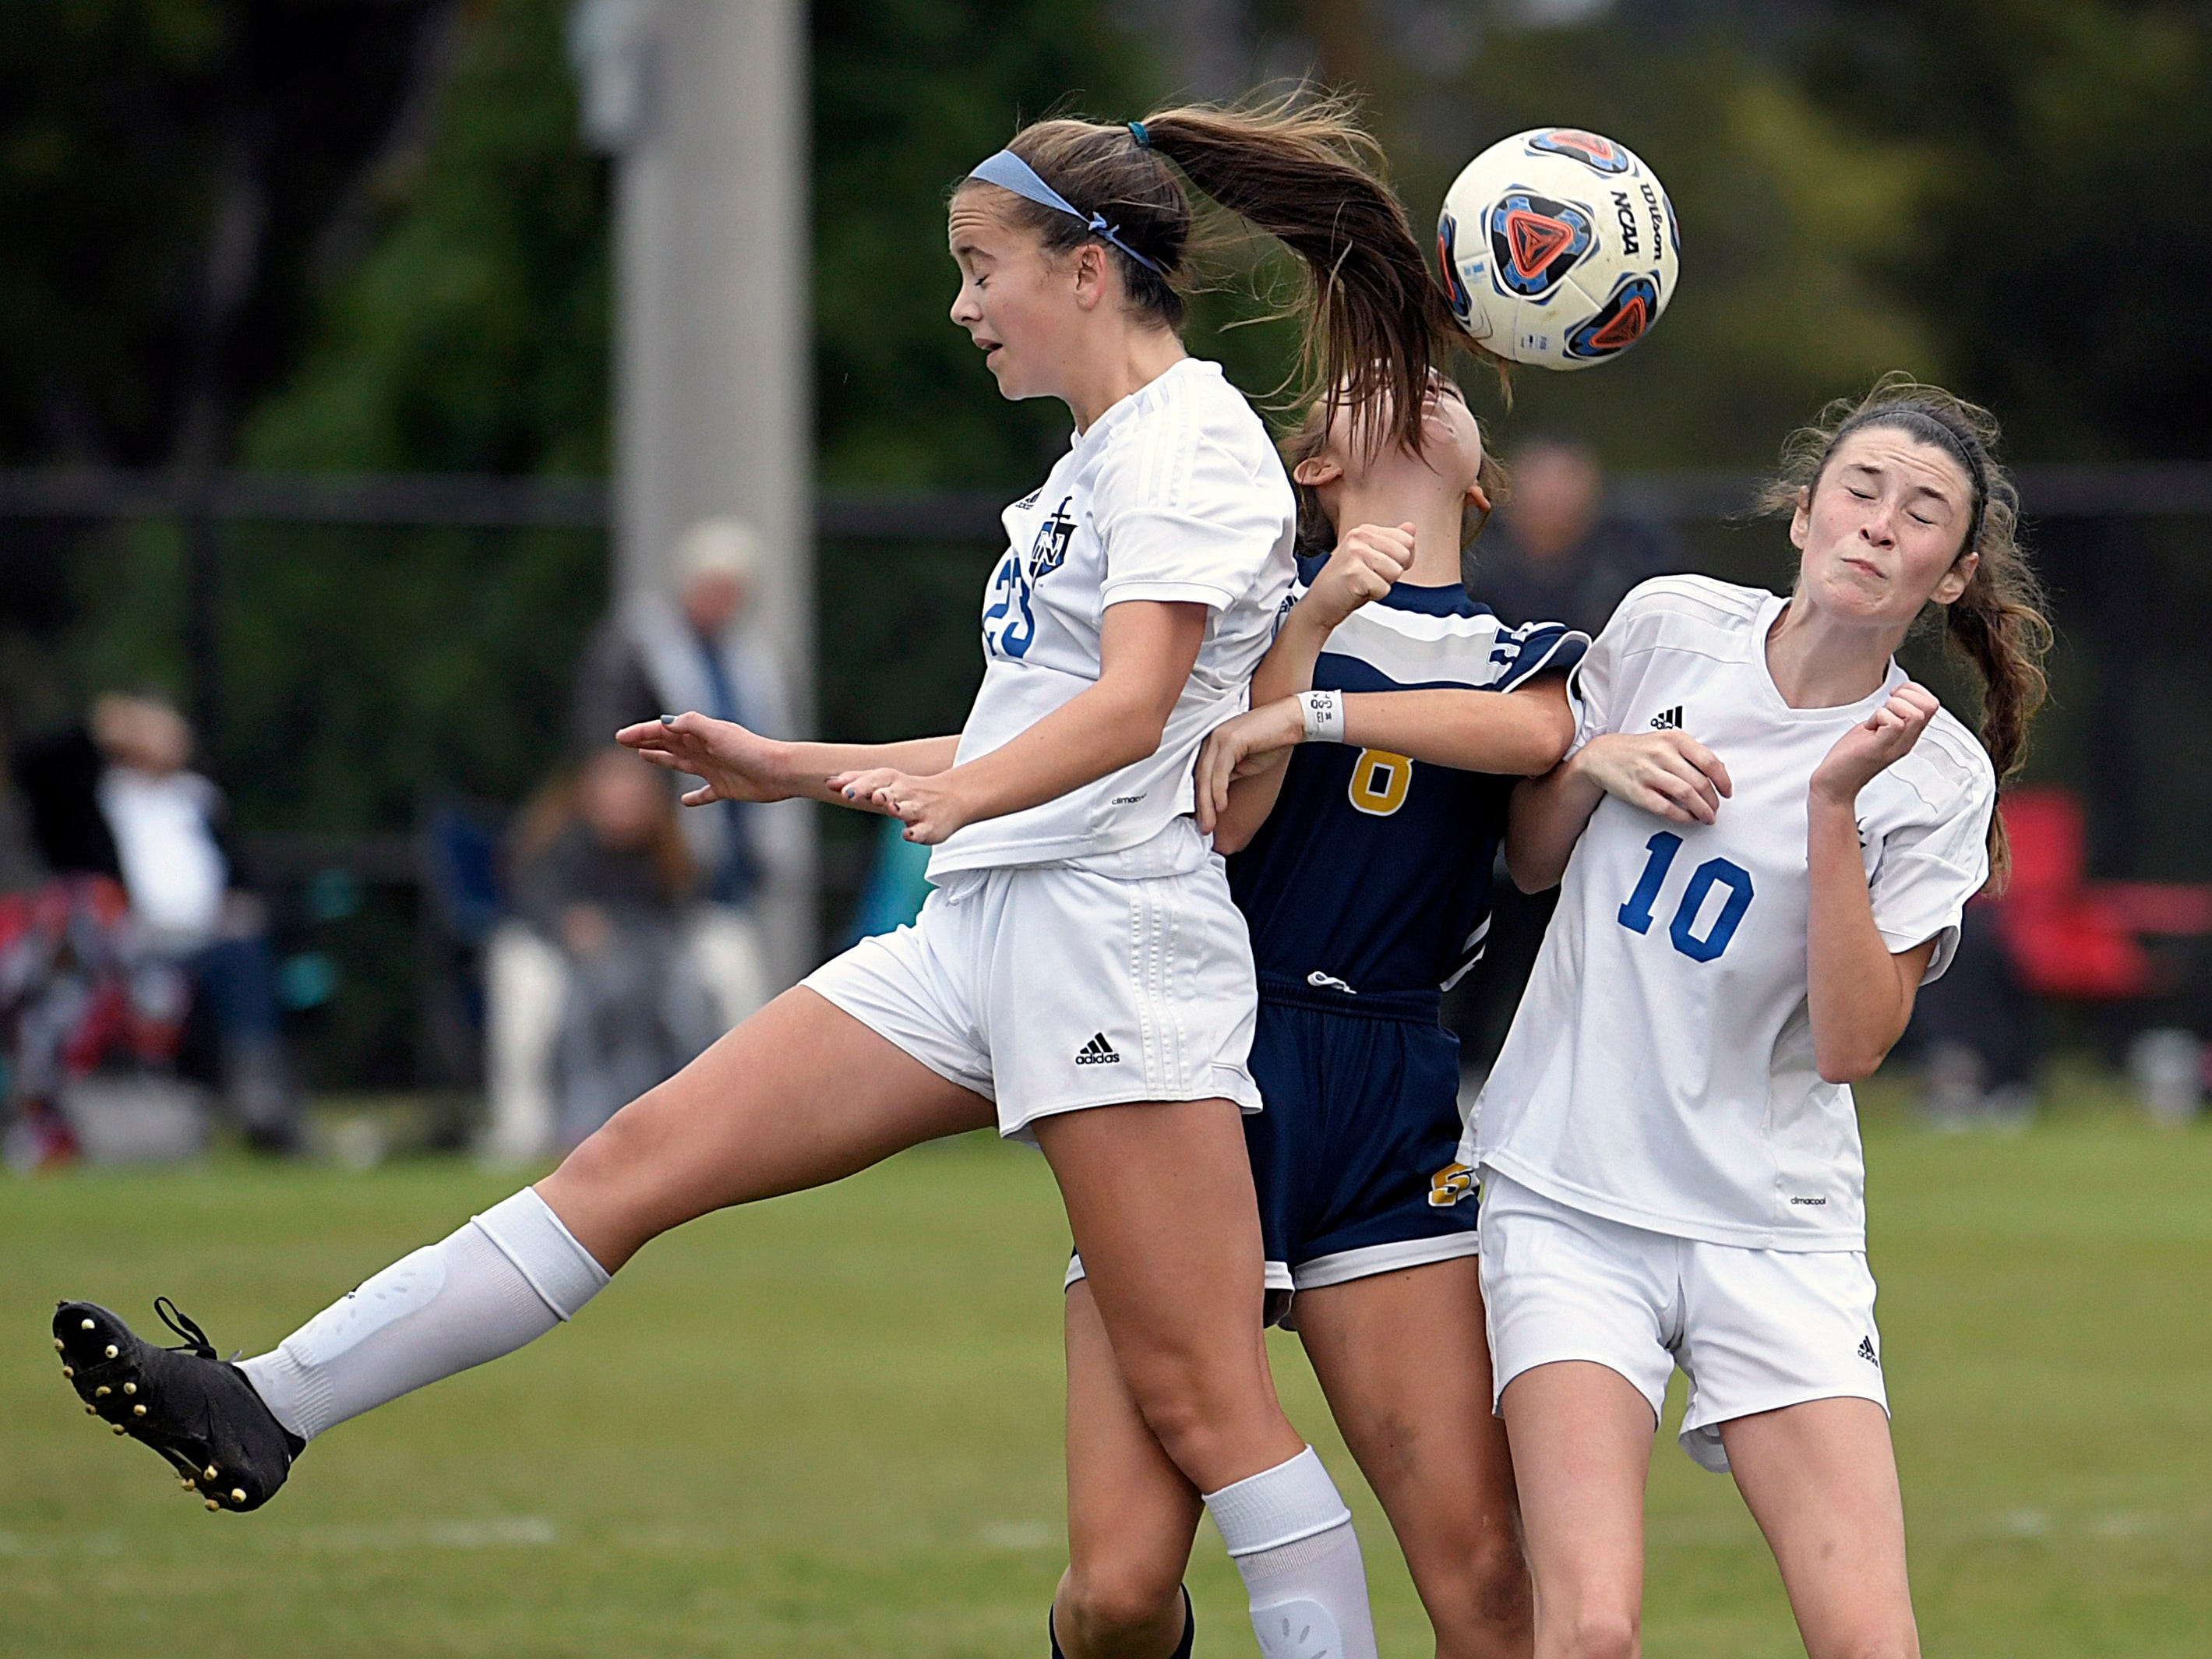 Seymour player Abbie Biddle (8) tries to head the ball with Nolensville players Kaitlyn Sneed  (23) and Waverly Dickason (10) during a semifinal game at the TSSAA Class AA State Girls' Soccer Tournament in Murfreesboro on Thursday, Oct. 25, 2018.